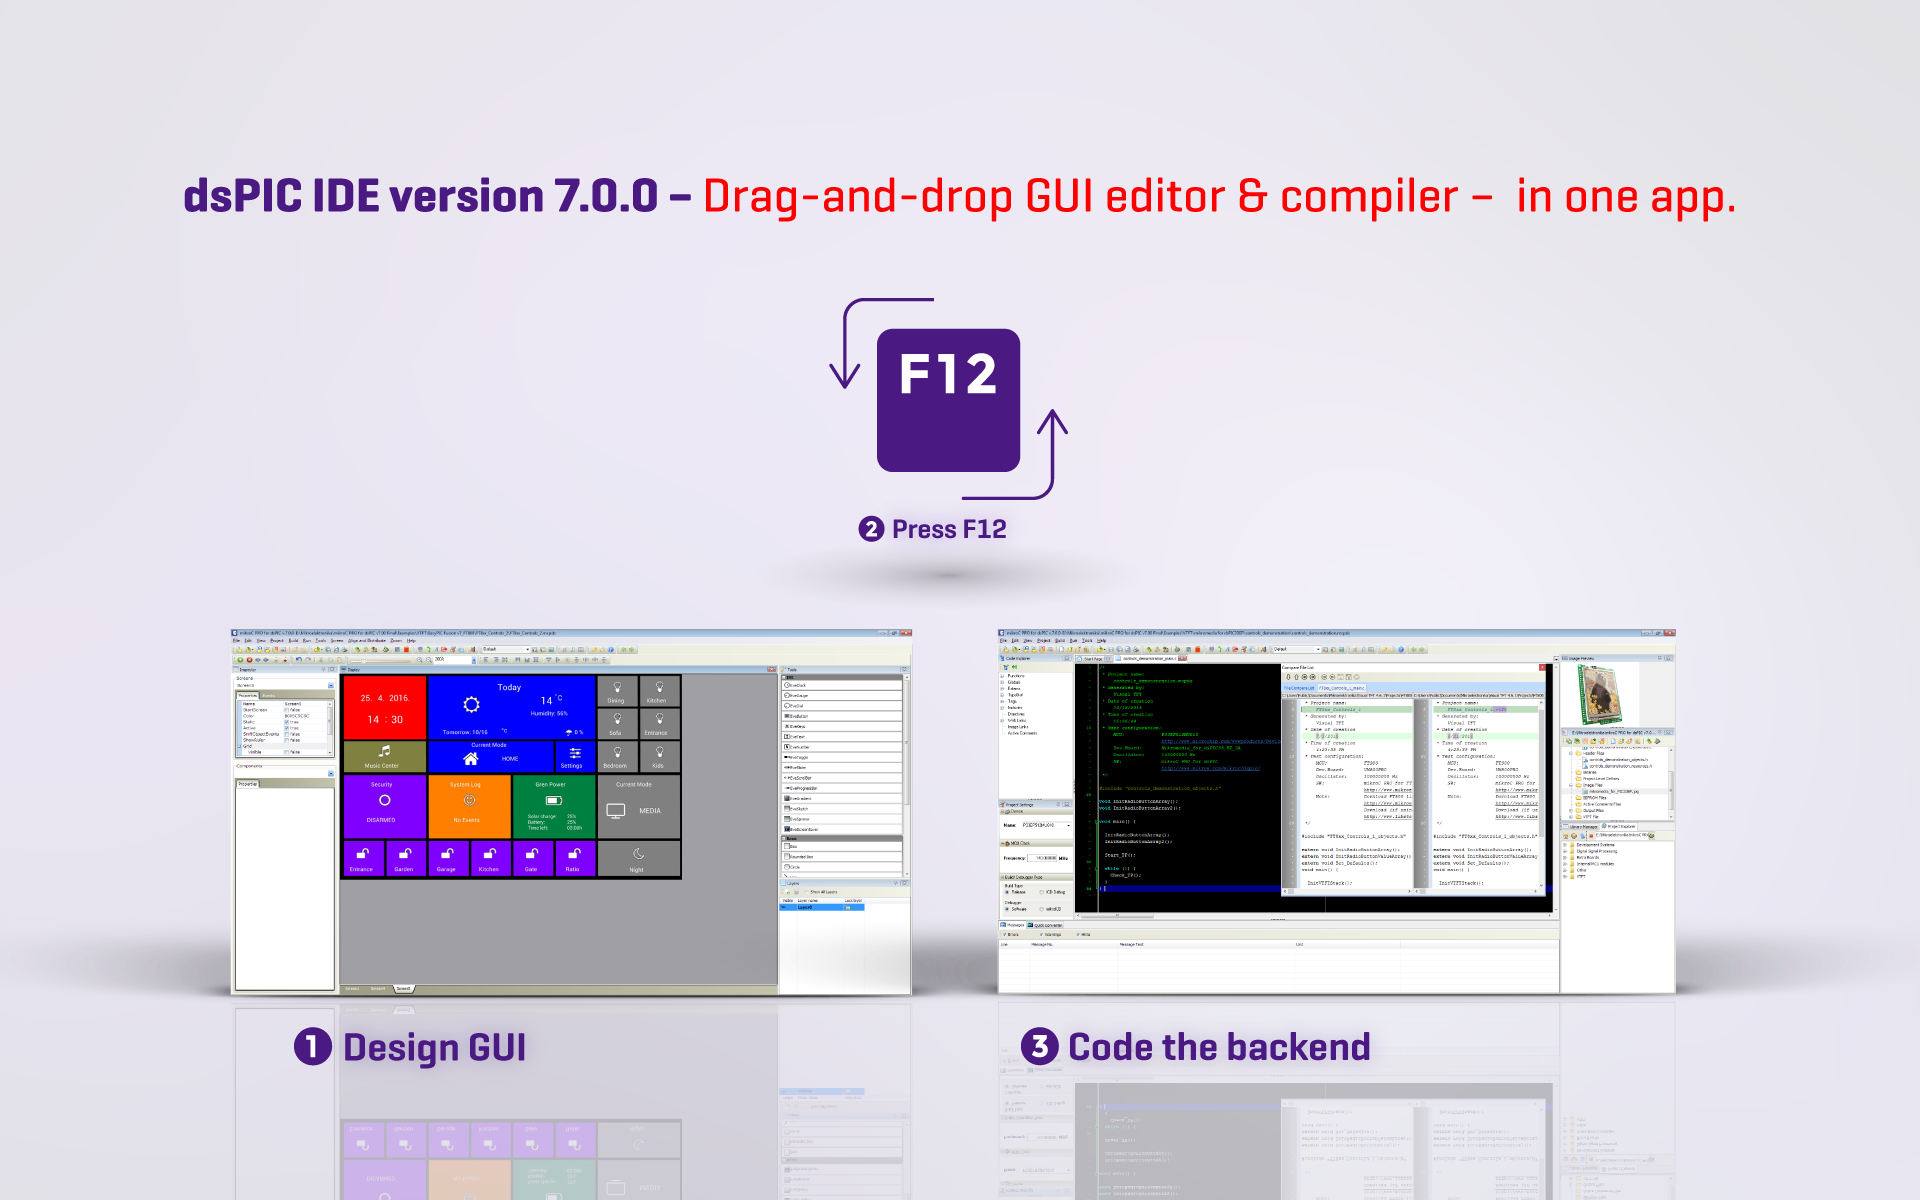 mikroC, mikroBasic and mikroPascal for dsPIC version 7.0.0 released